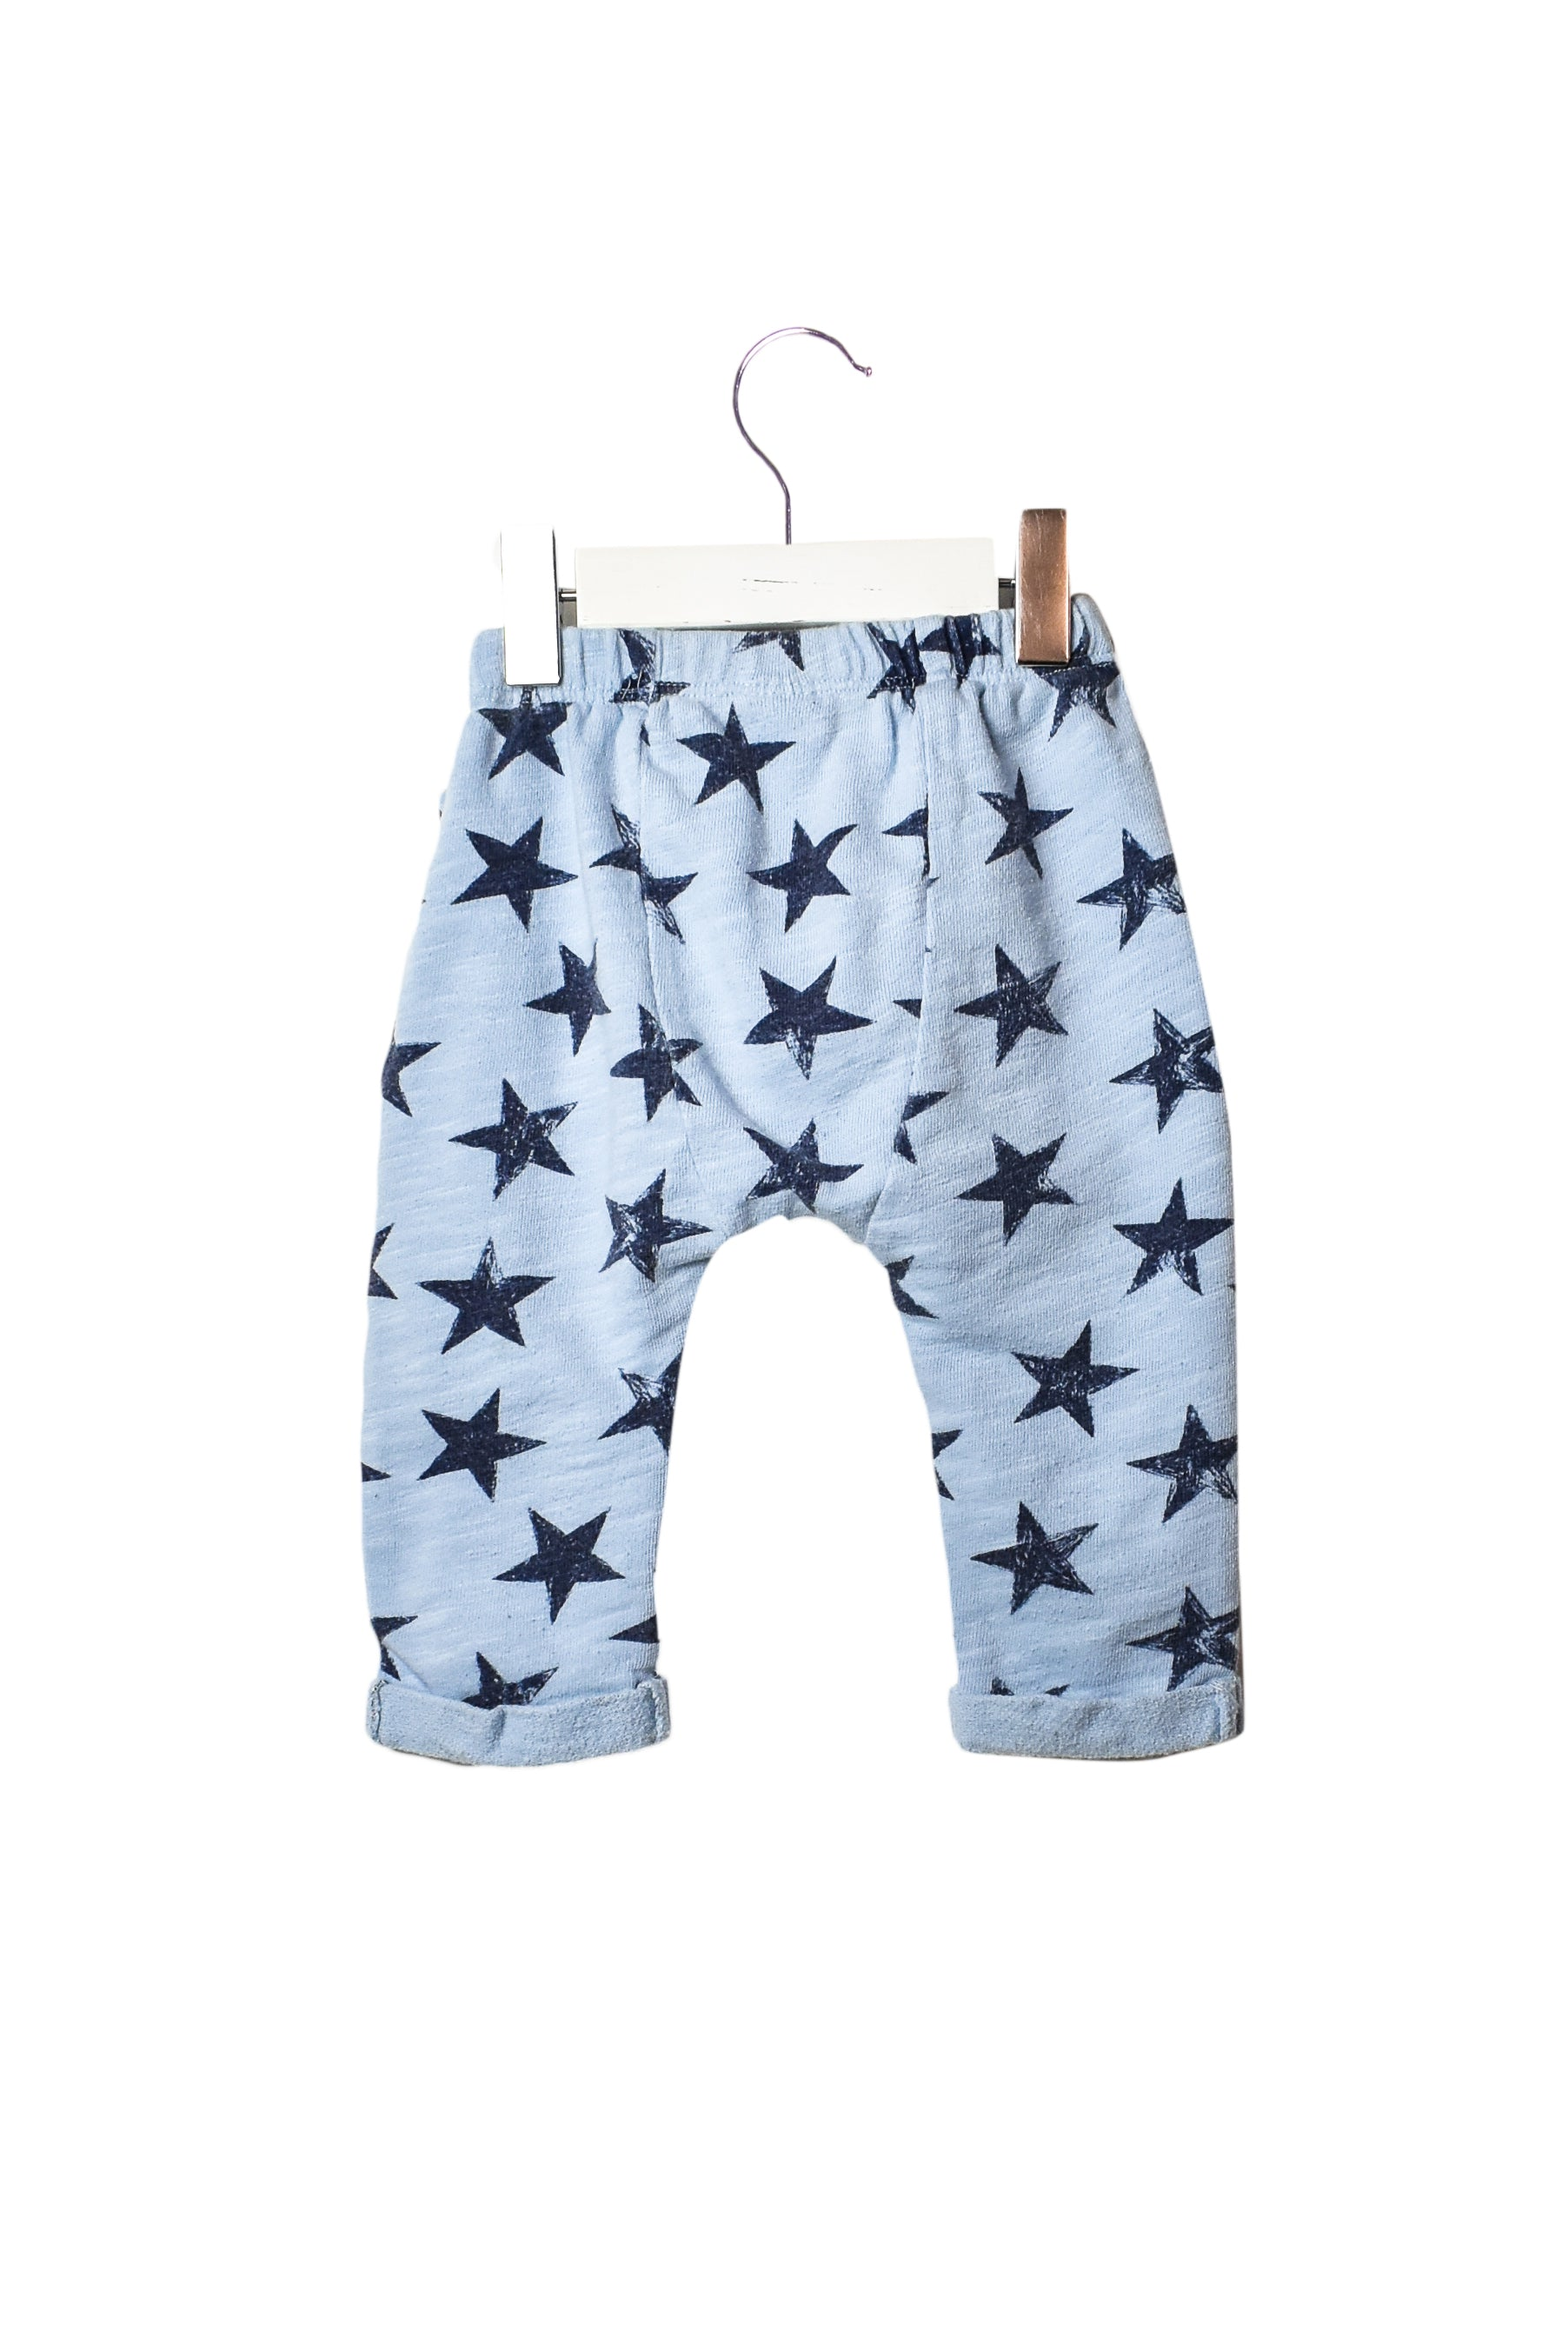 10007961 Seed Baby~ Pants 3-6M at Retykle